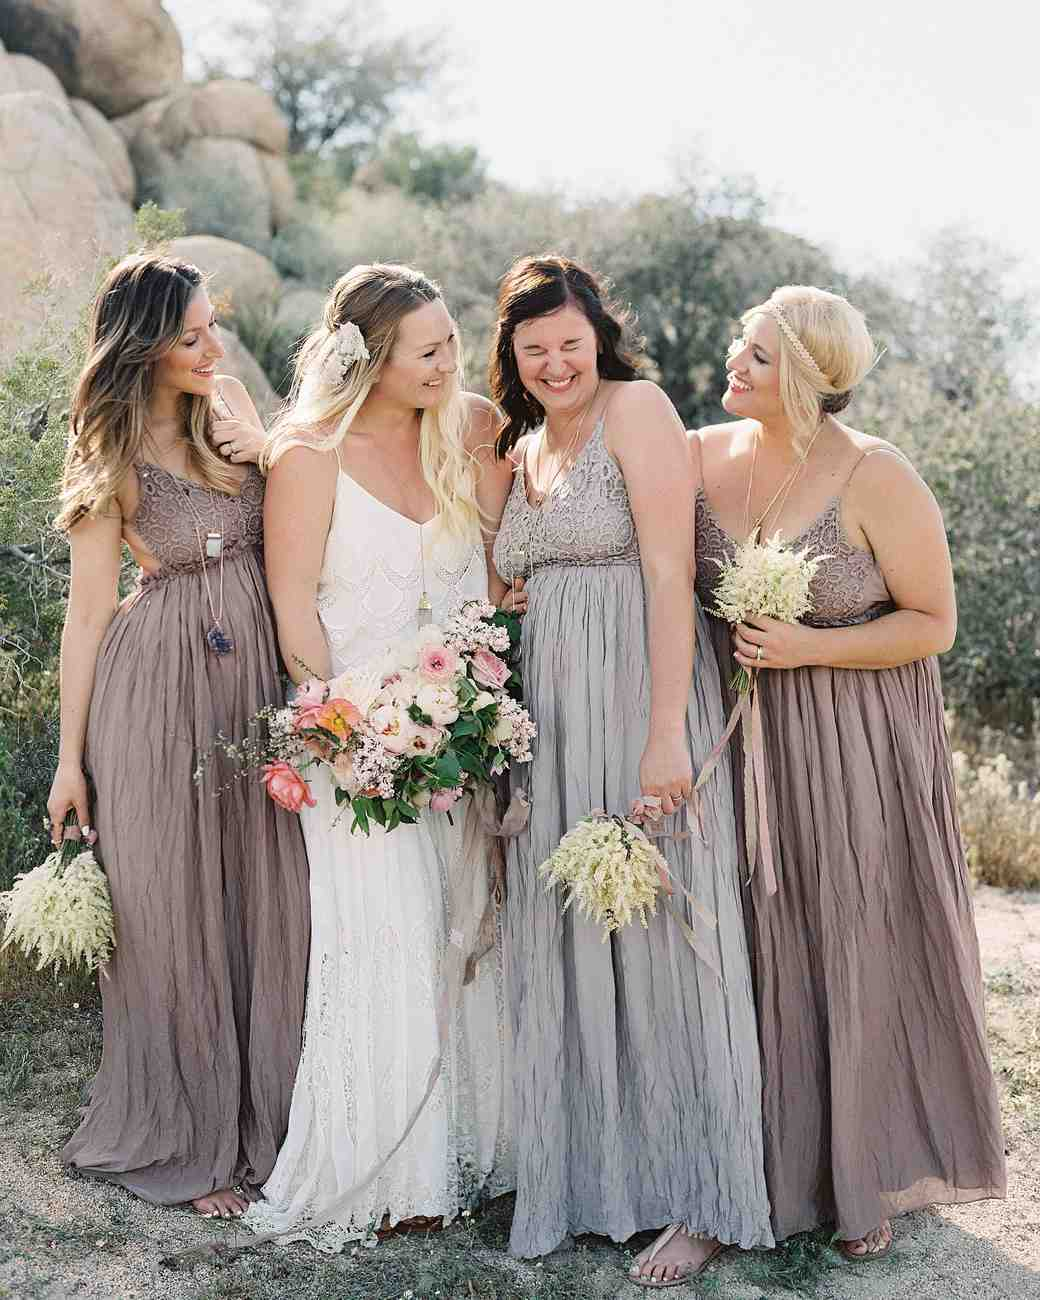 An Intimate, Boho Wedding In The California Desert